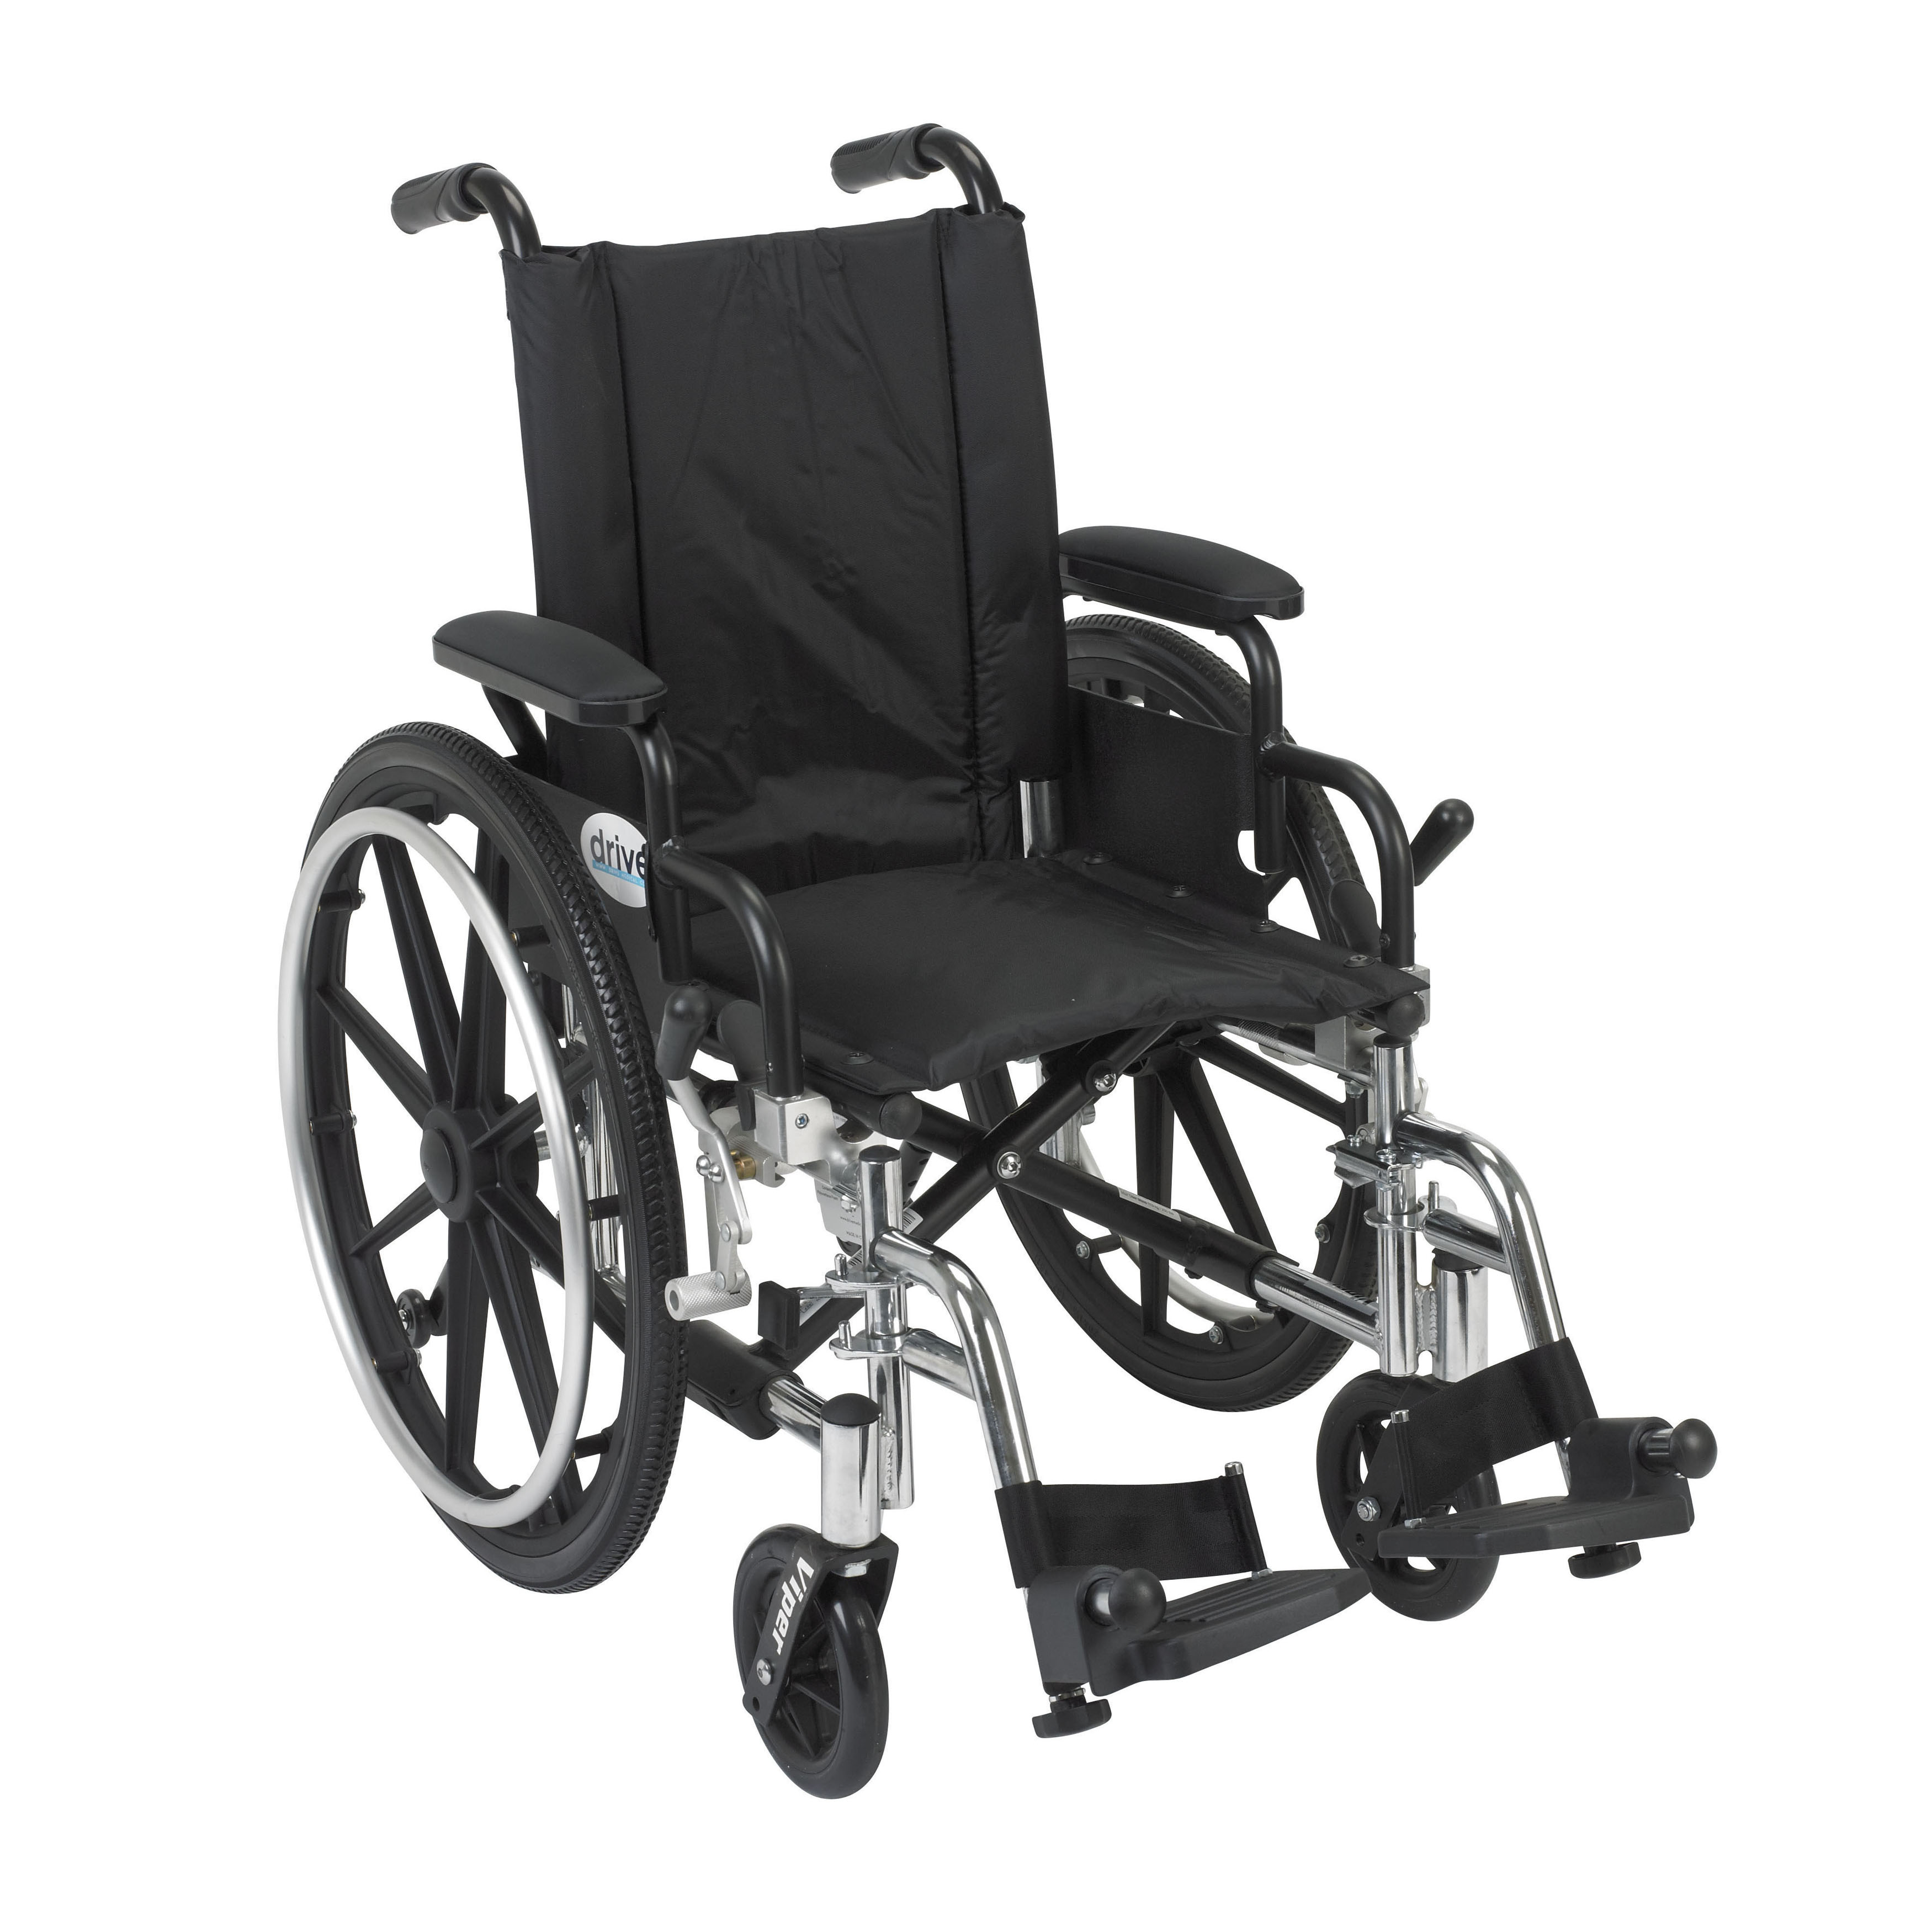 Viper 14-inch Wheelchair with Flip-back Desk Arms and Front Riggings